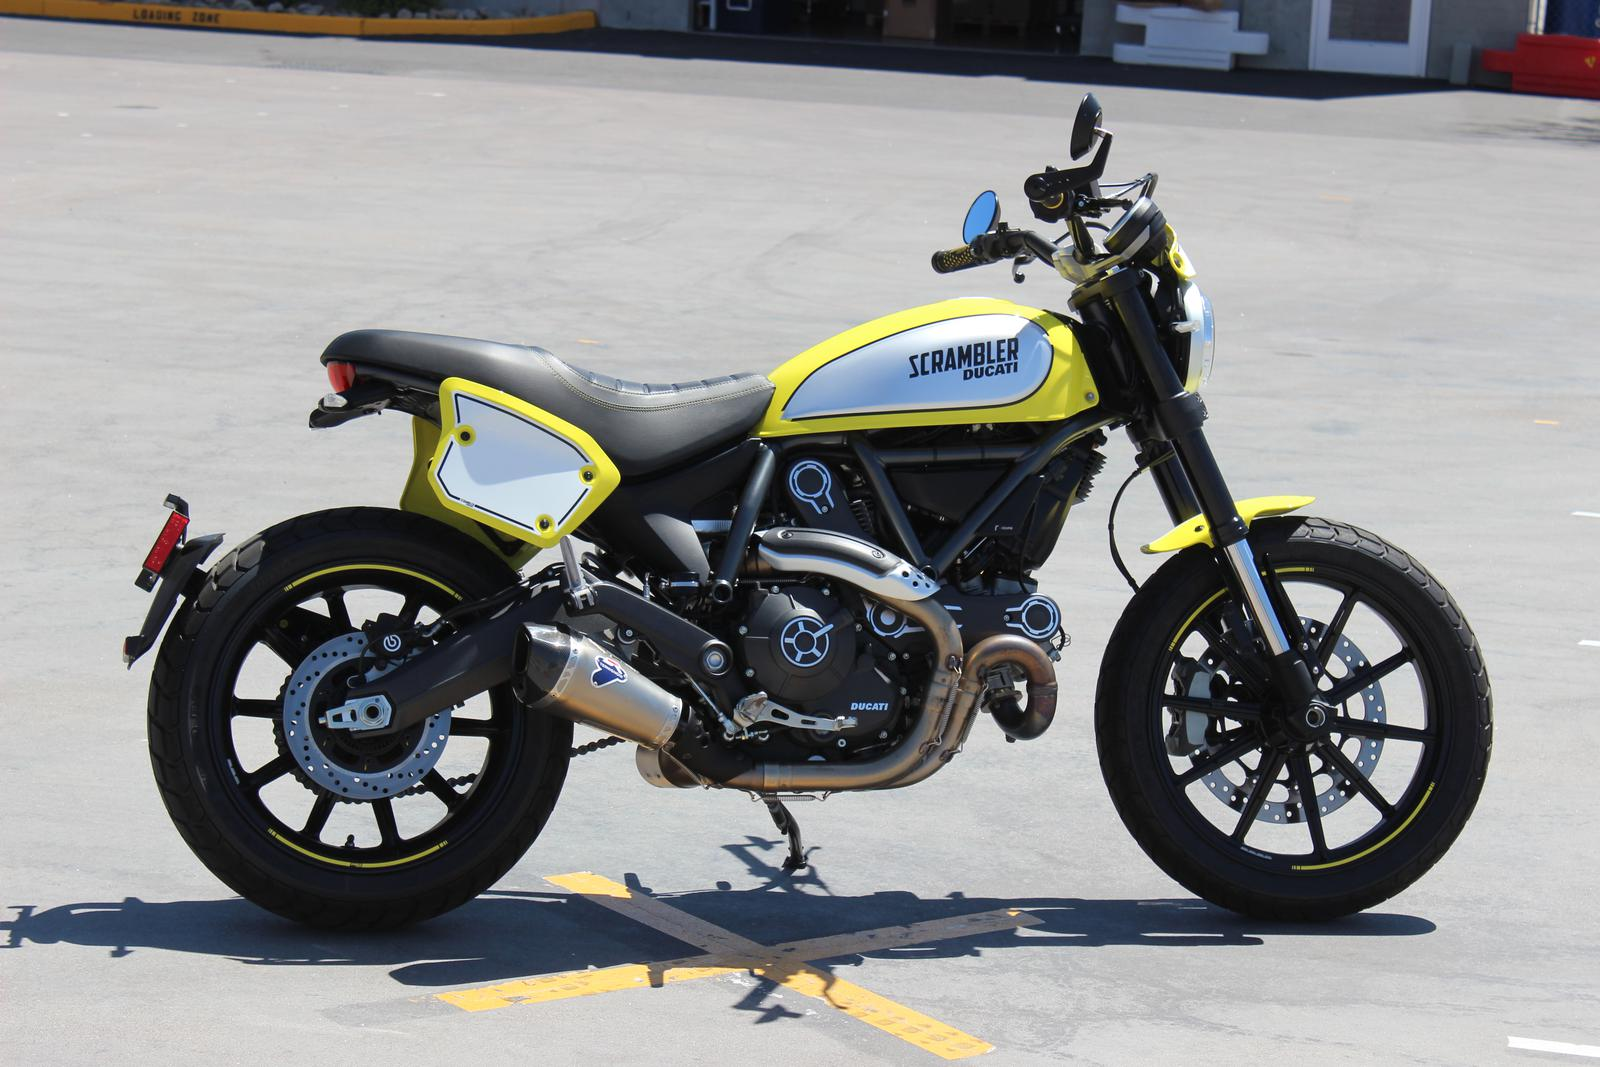 2016 ducati scrambler flat track pro for sale in scottsdale, az